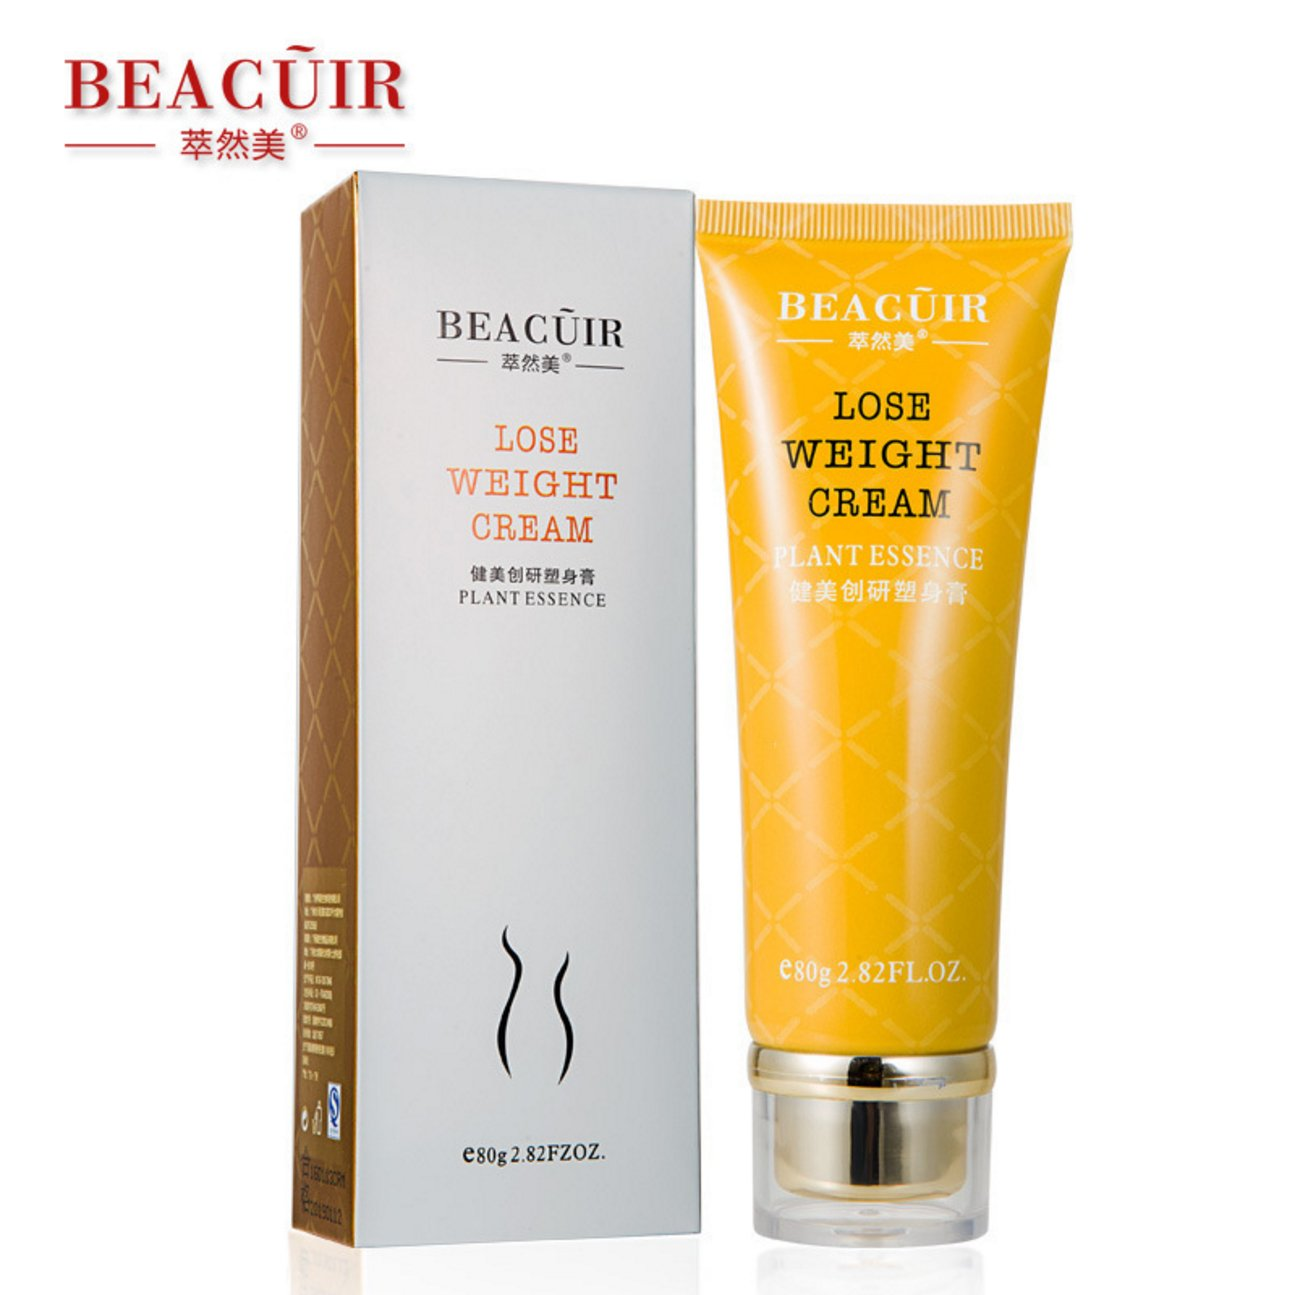 BEACUIR Fat Burning Body Slimming Slim Cream Gel Anti Cellulite Weight lose 80g